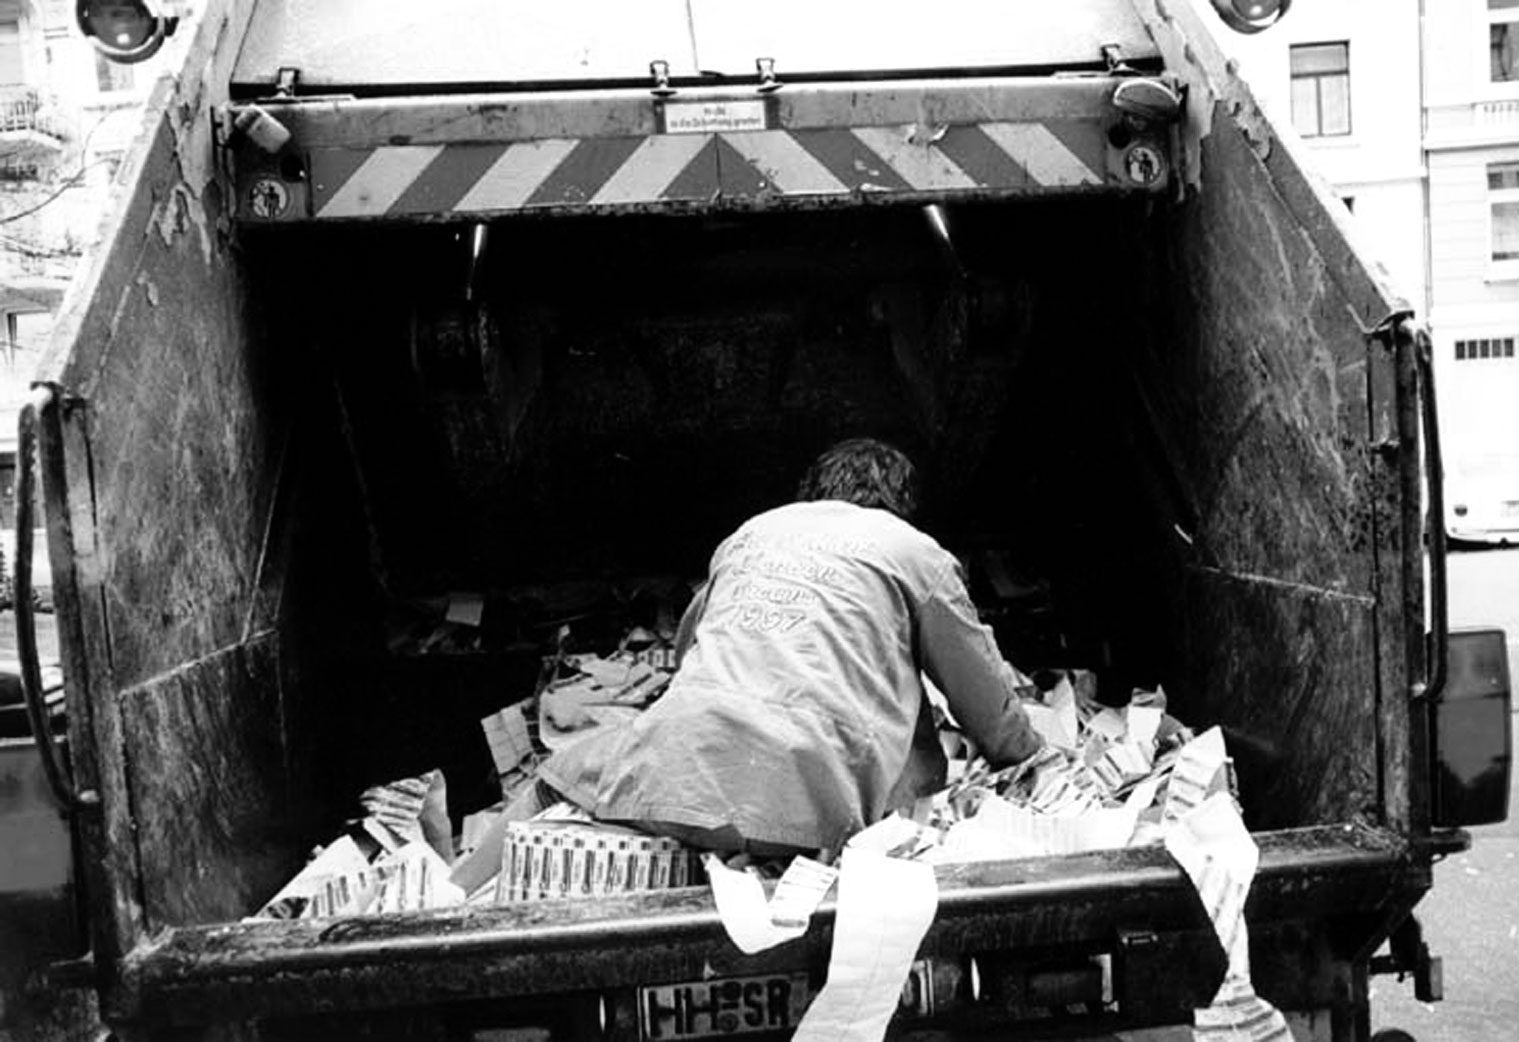 my daily dives in the dumpster by lars eighner Lars eighner became homeless in 1988 after leaving a job he had held for ten years as an attendant at a state hospital in austin, texas he lives in a small apartment in austin and continues to scavenge.